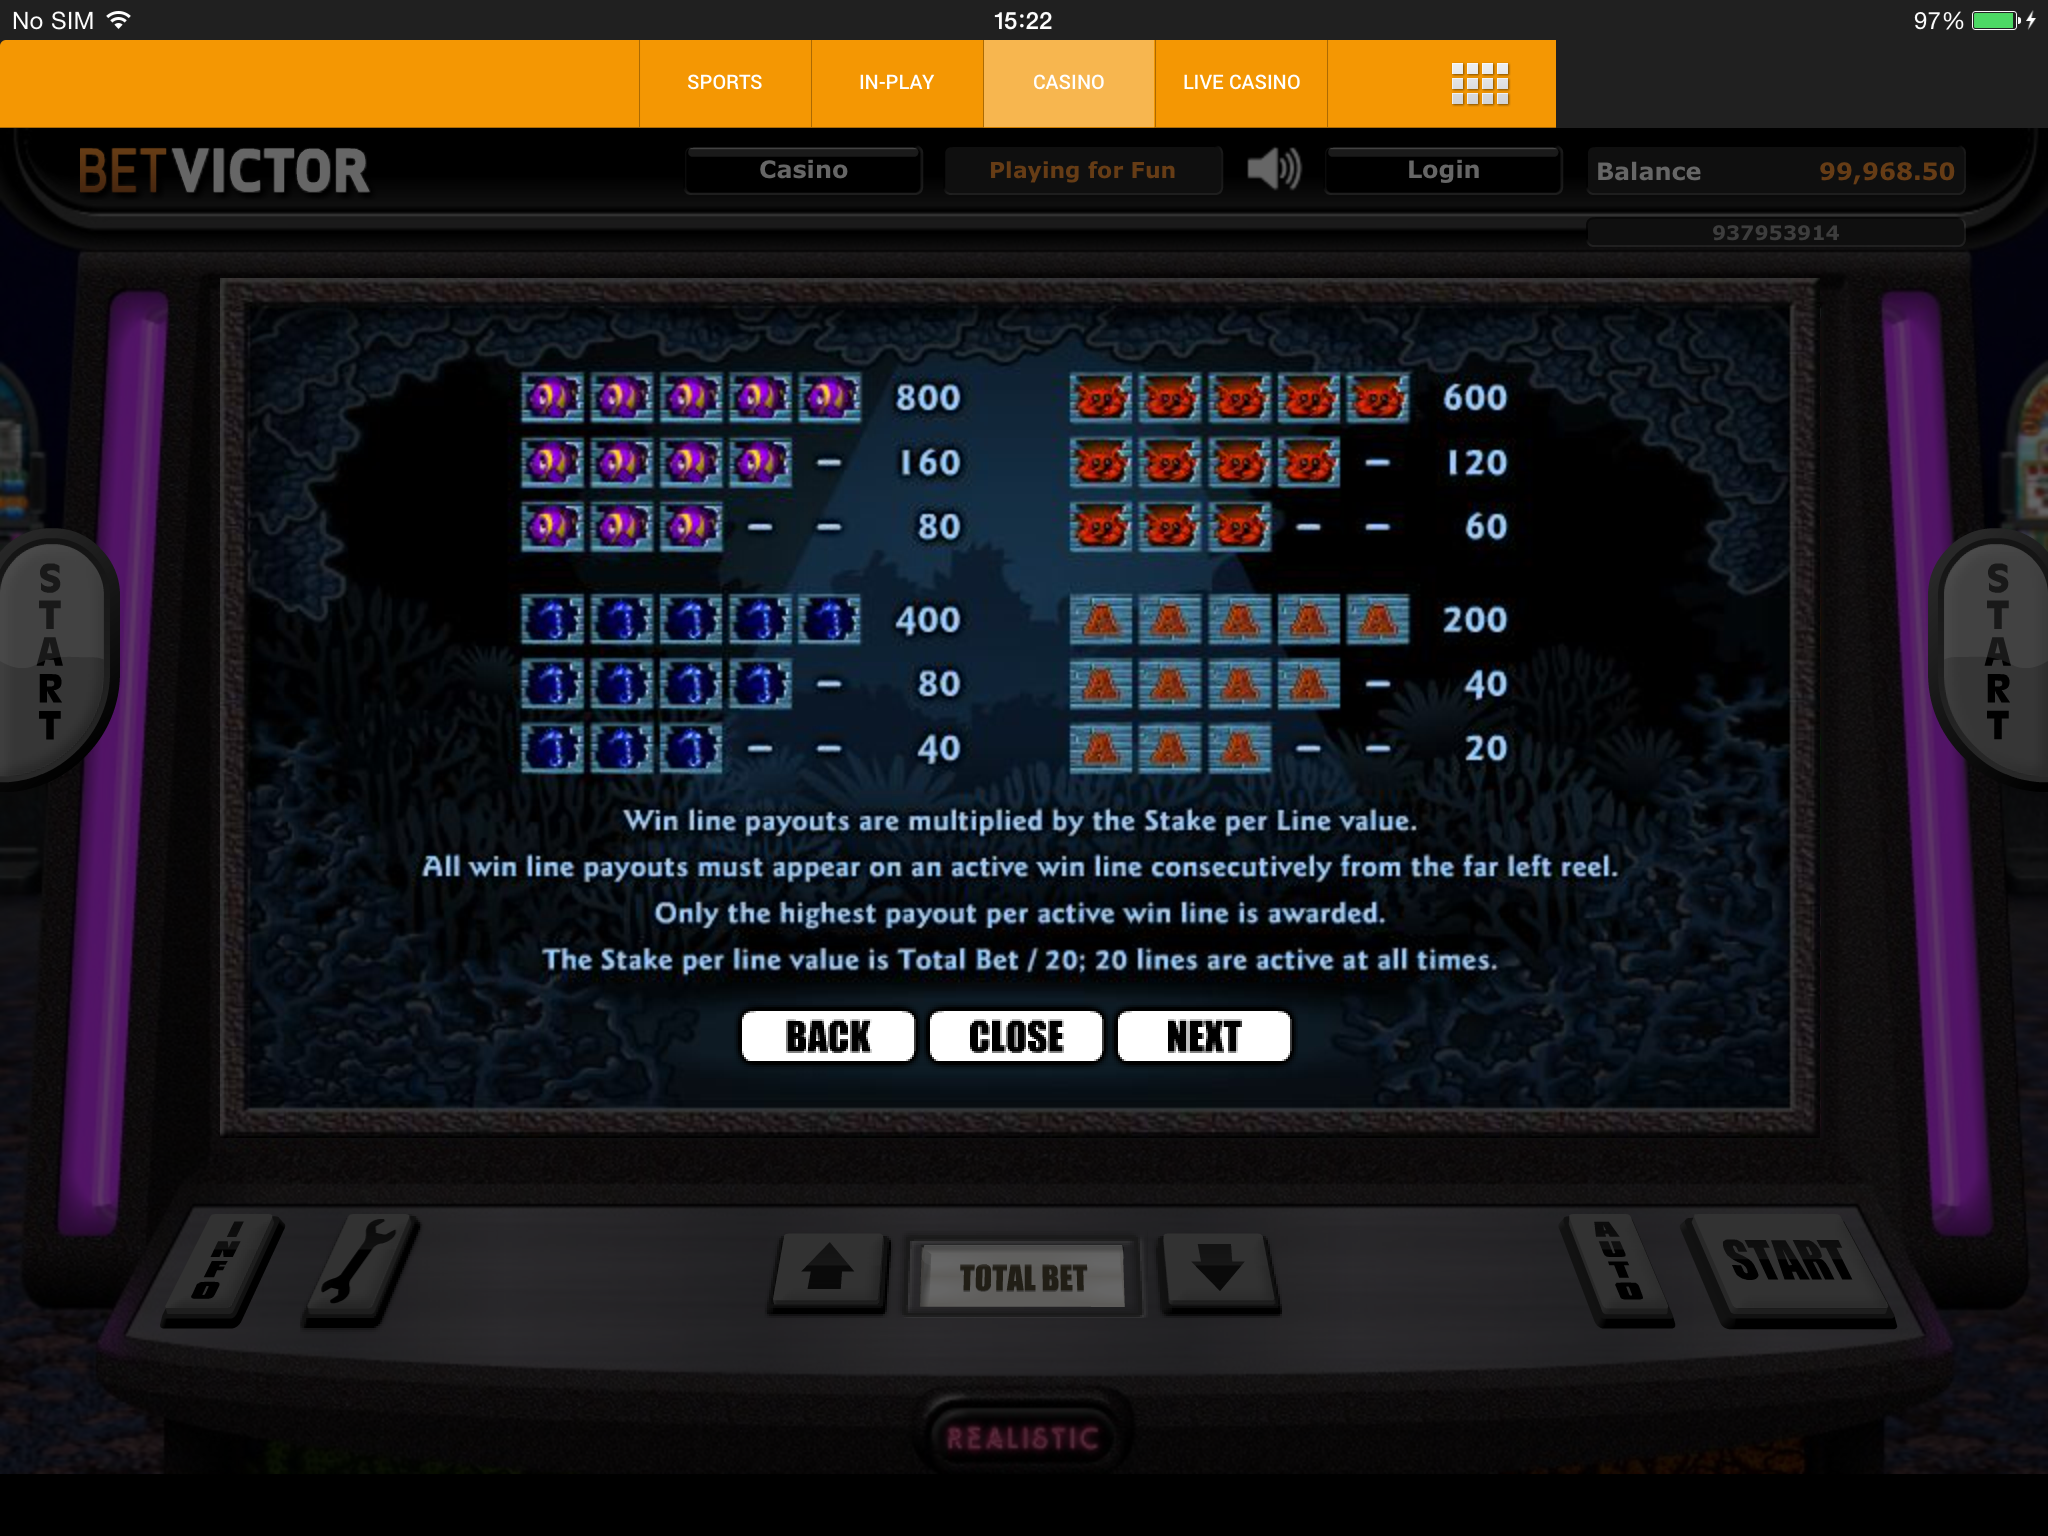 Double Bubble Slots - Play Free Casino Slots Online